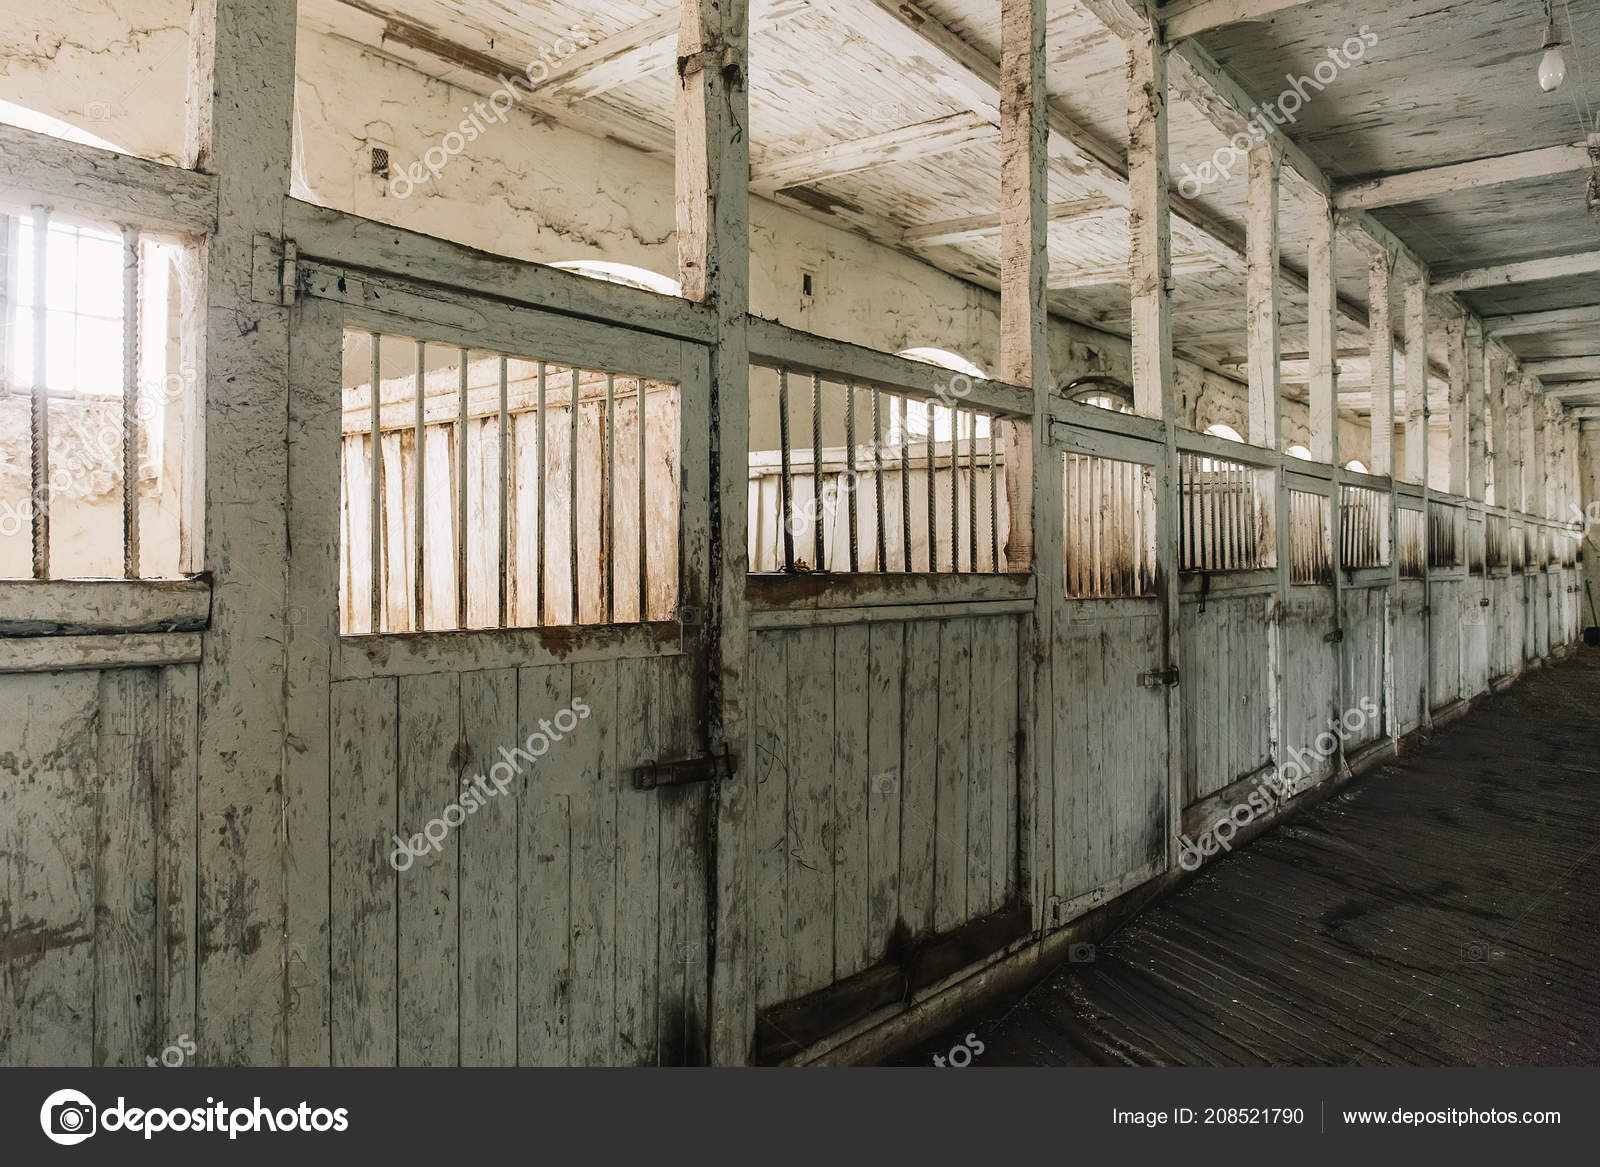 Horse Barn Or Stable On Farm Or Ranch Old Wooden Horse Boxes